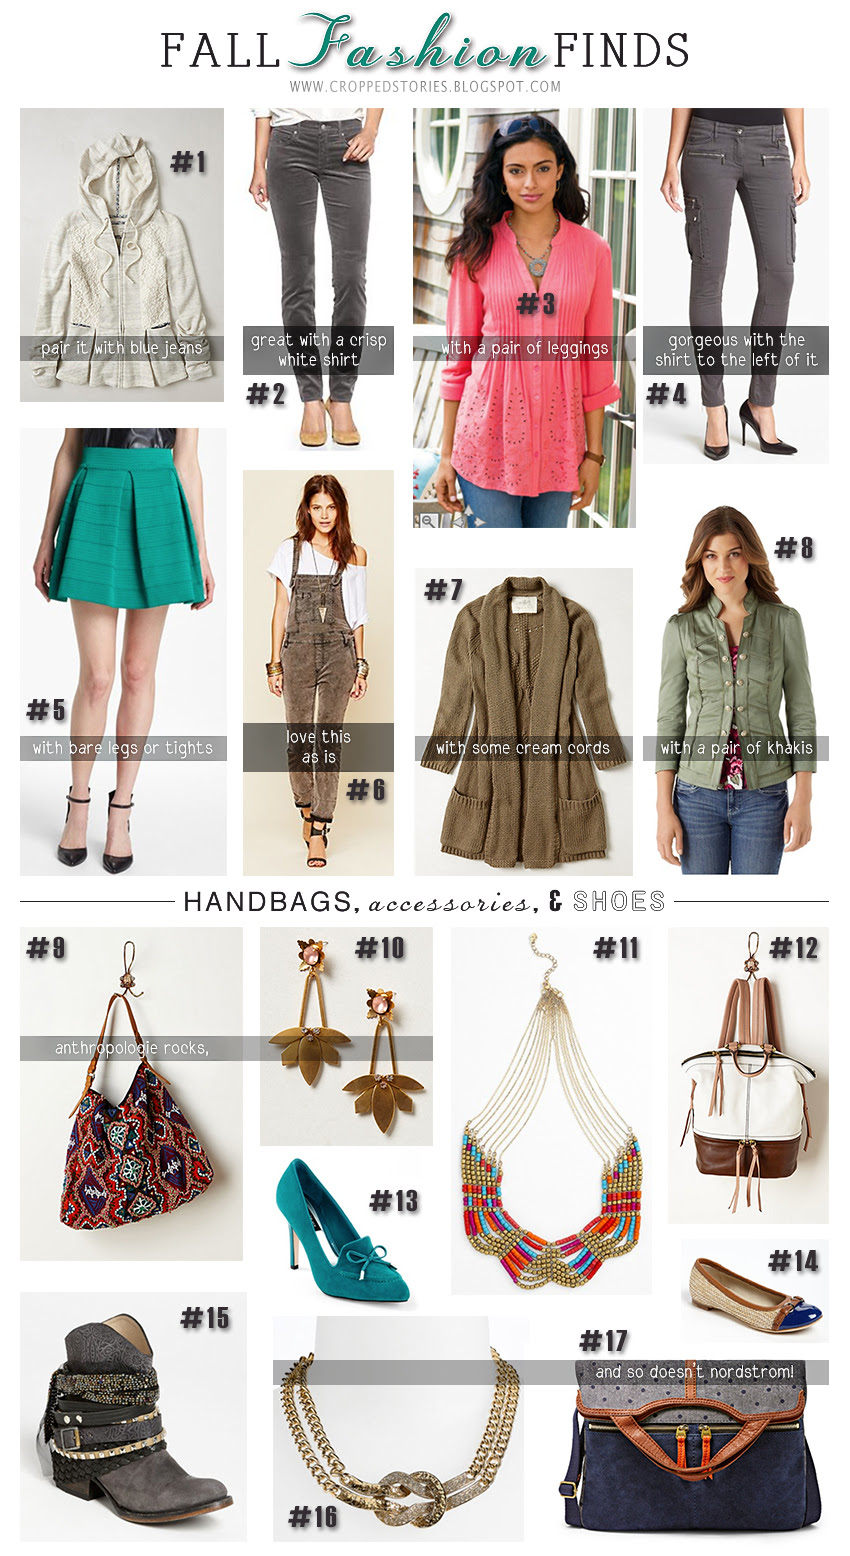 FALL FASHION FINDS CLOTHING ACCESSORIES SHOES HANDBAGS